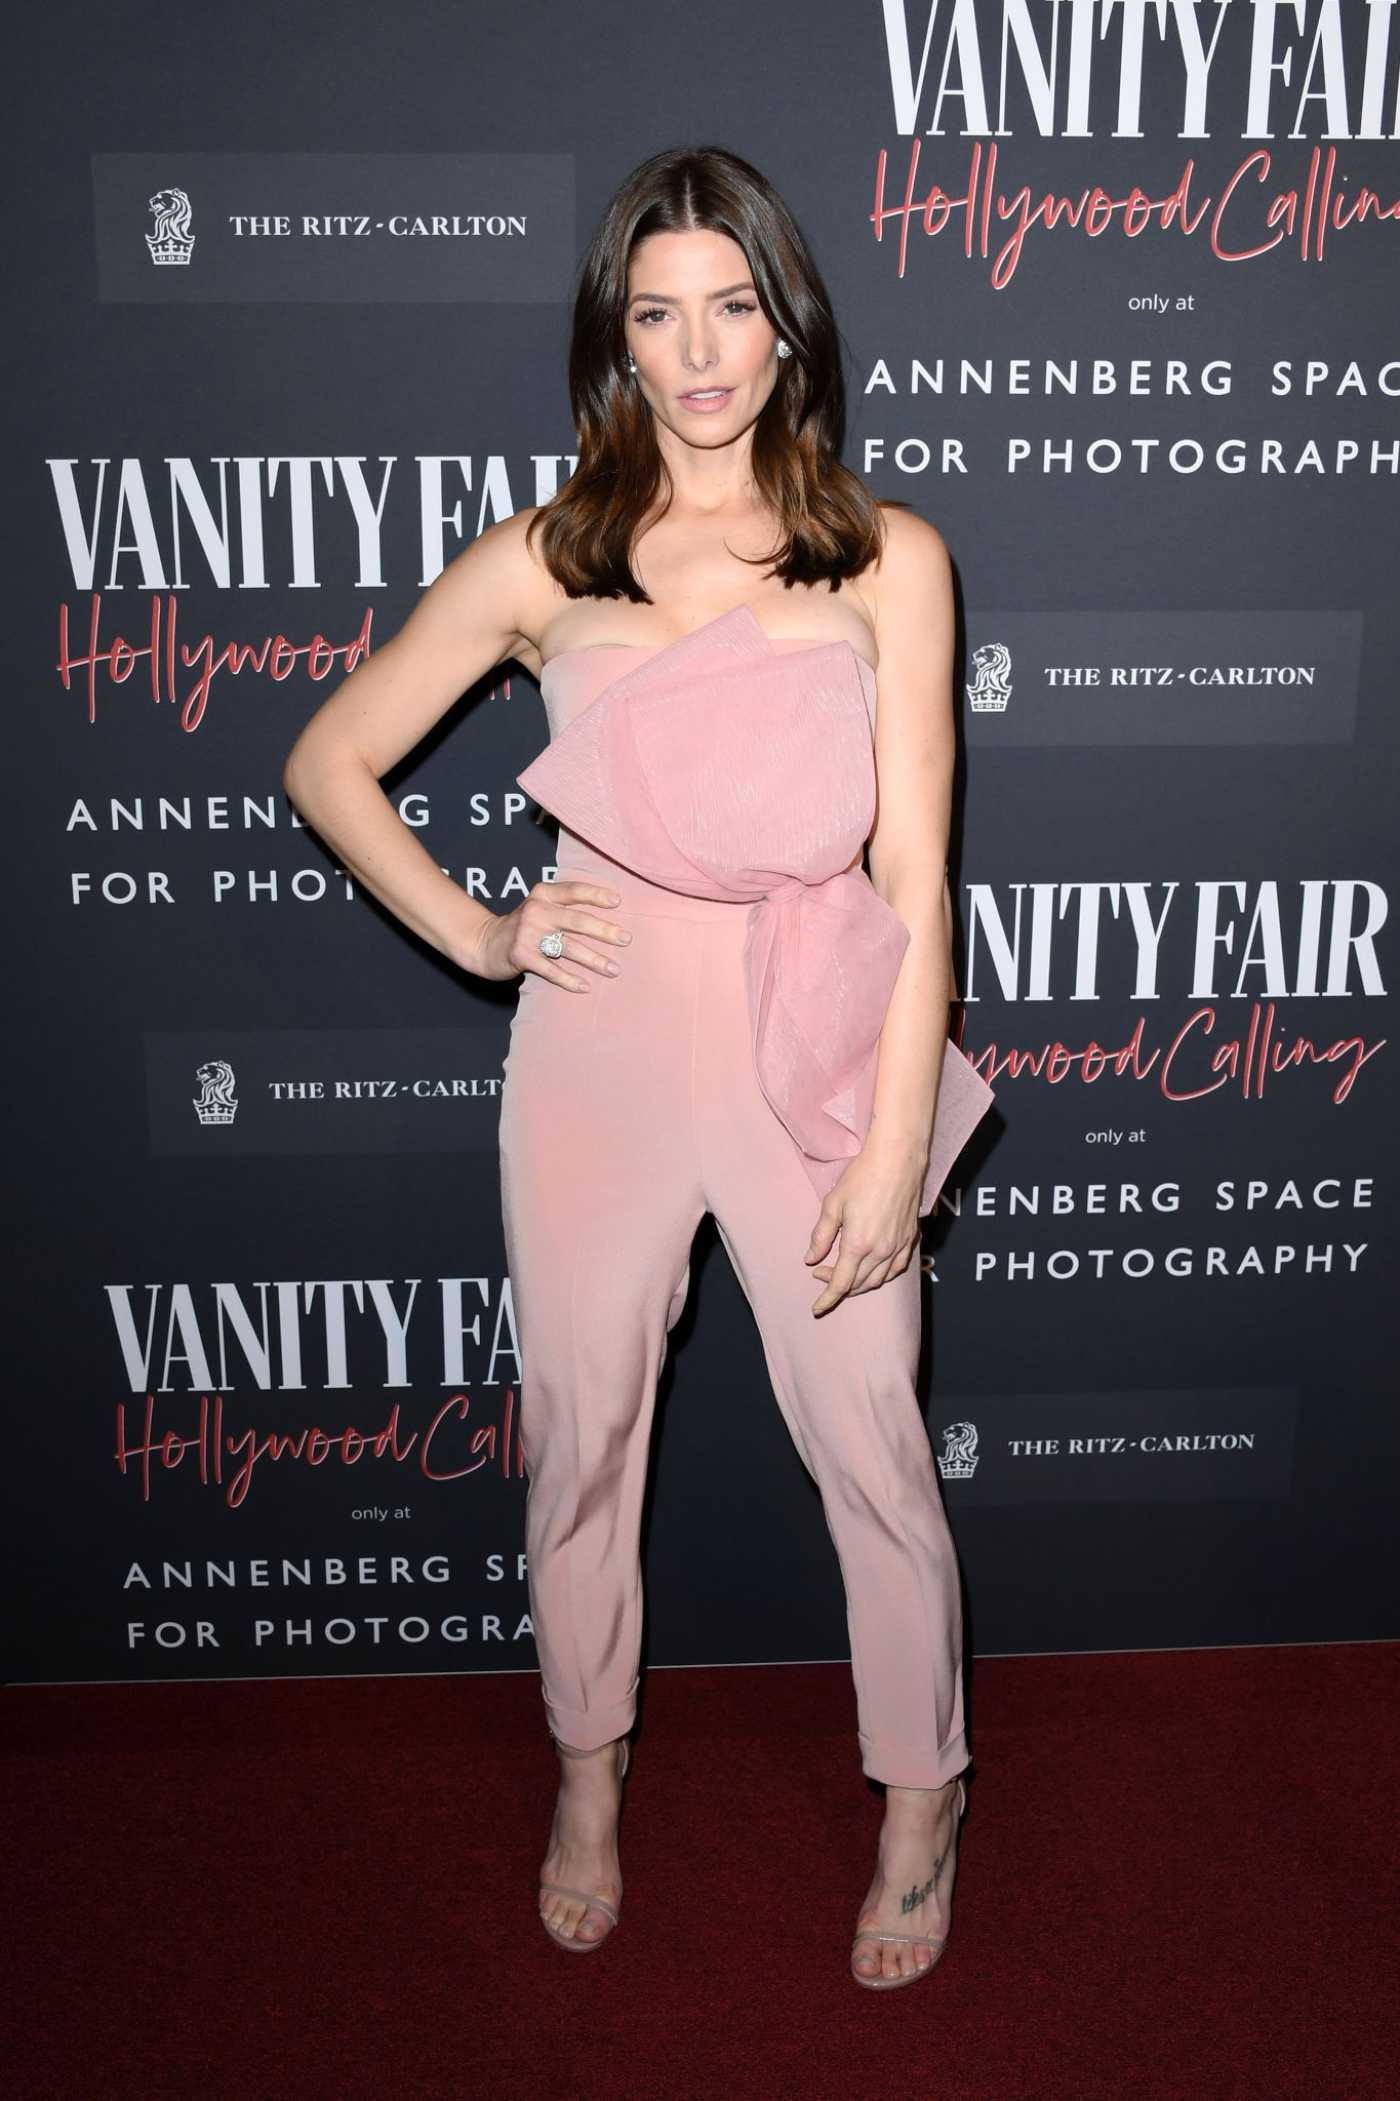 Ashley Greene Attends the Vanity Fair: Hollywood Calling Exhibition in Los Angeles 02/04/2020